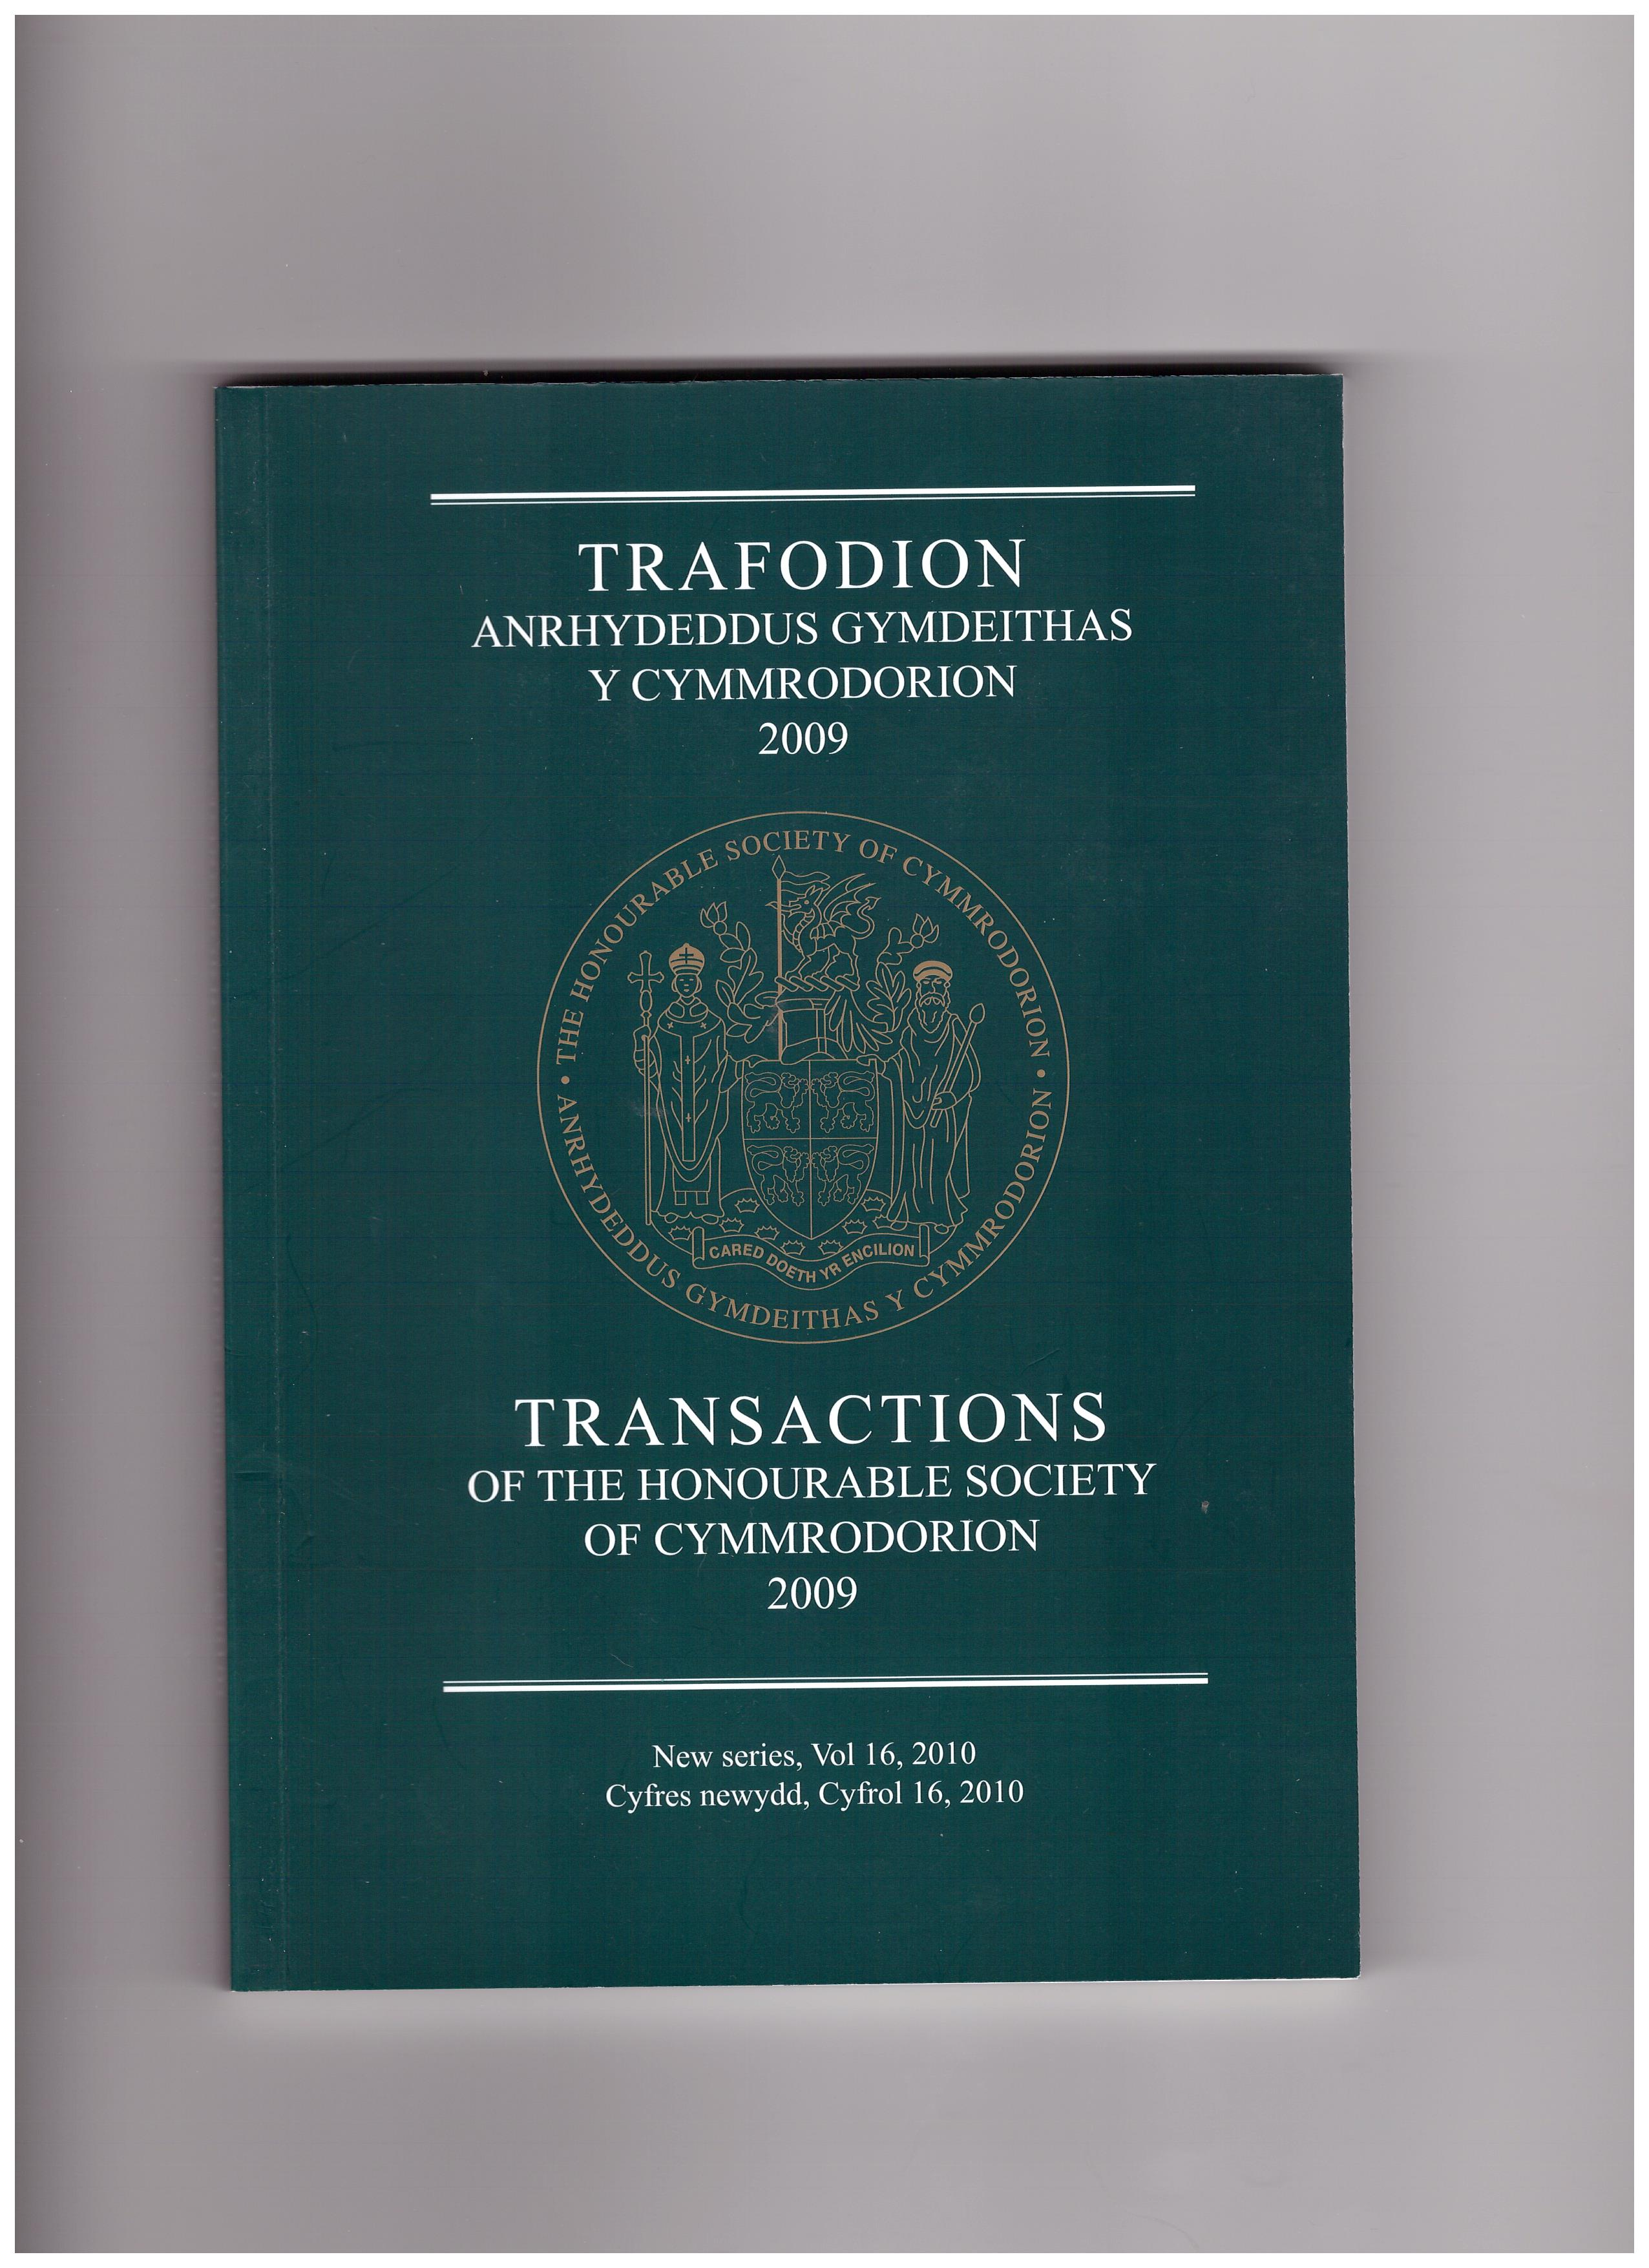 Image for Transactions of the Honourable Society of Cymmrodorion. 2009. New Series Volume 16. 2010. Trafodion Anrhydeddus Gymdeithas Y Cymmrodorion